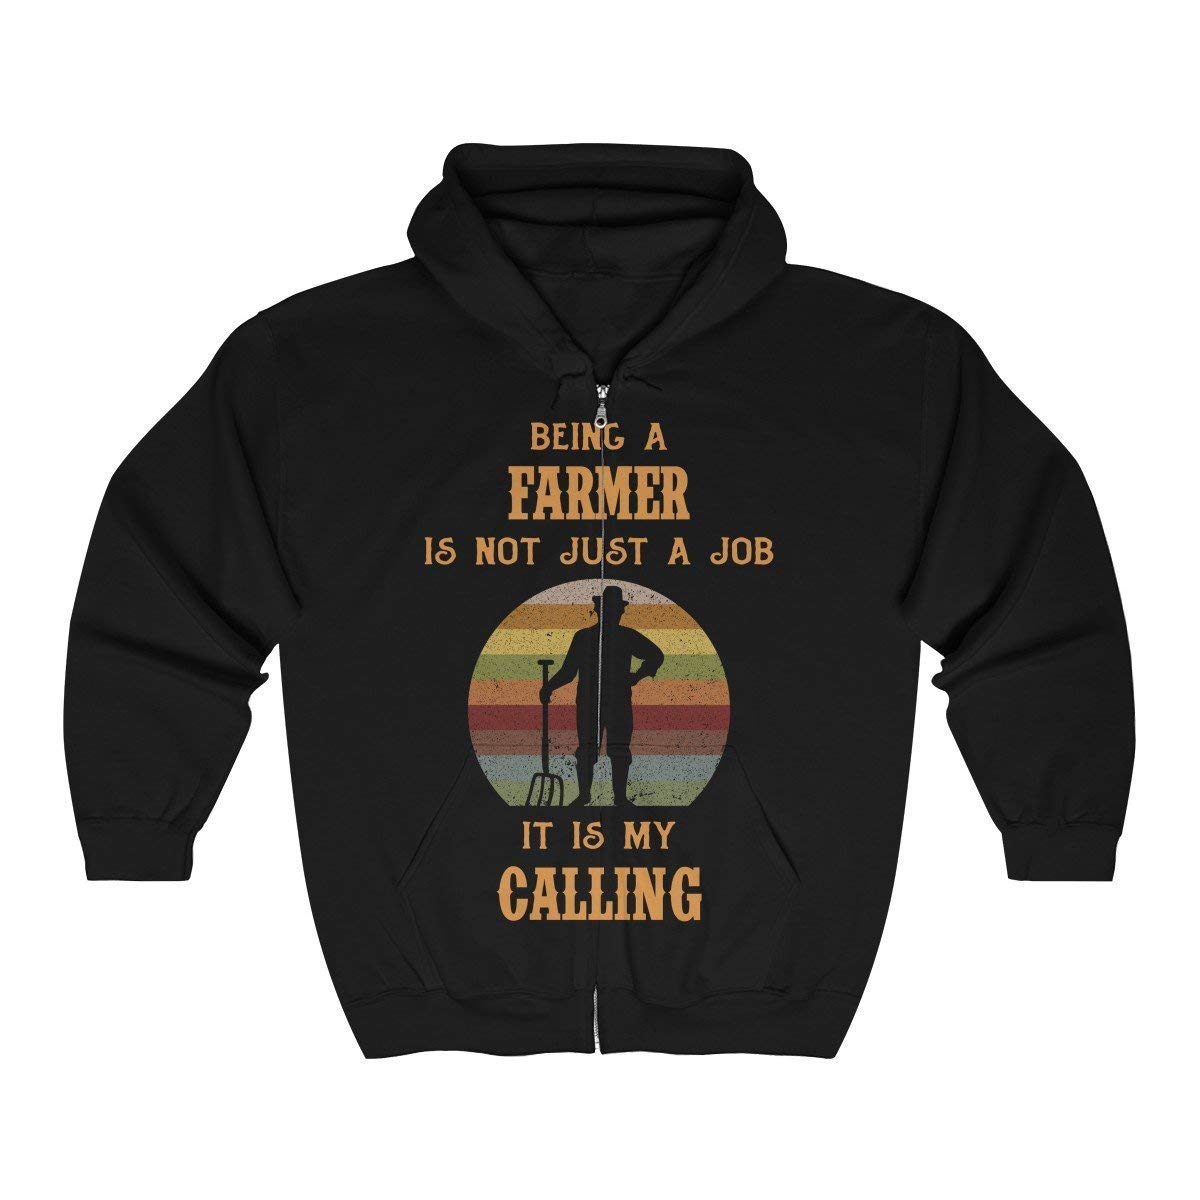 Being a Farmer is not just a Job Retro Vintage Zip Hooded Sweatshirt